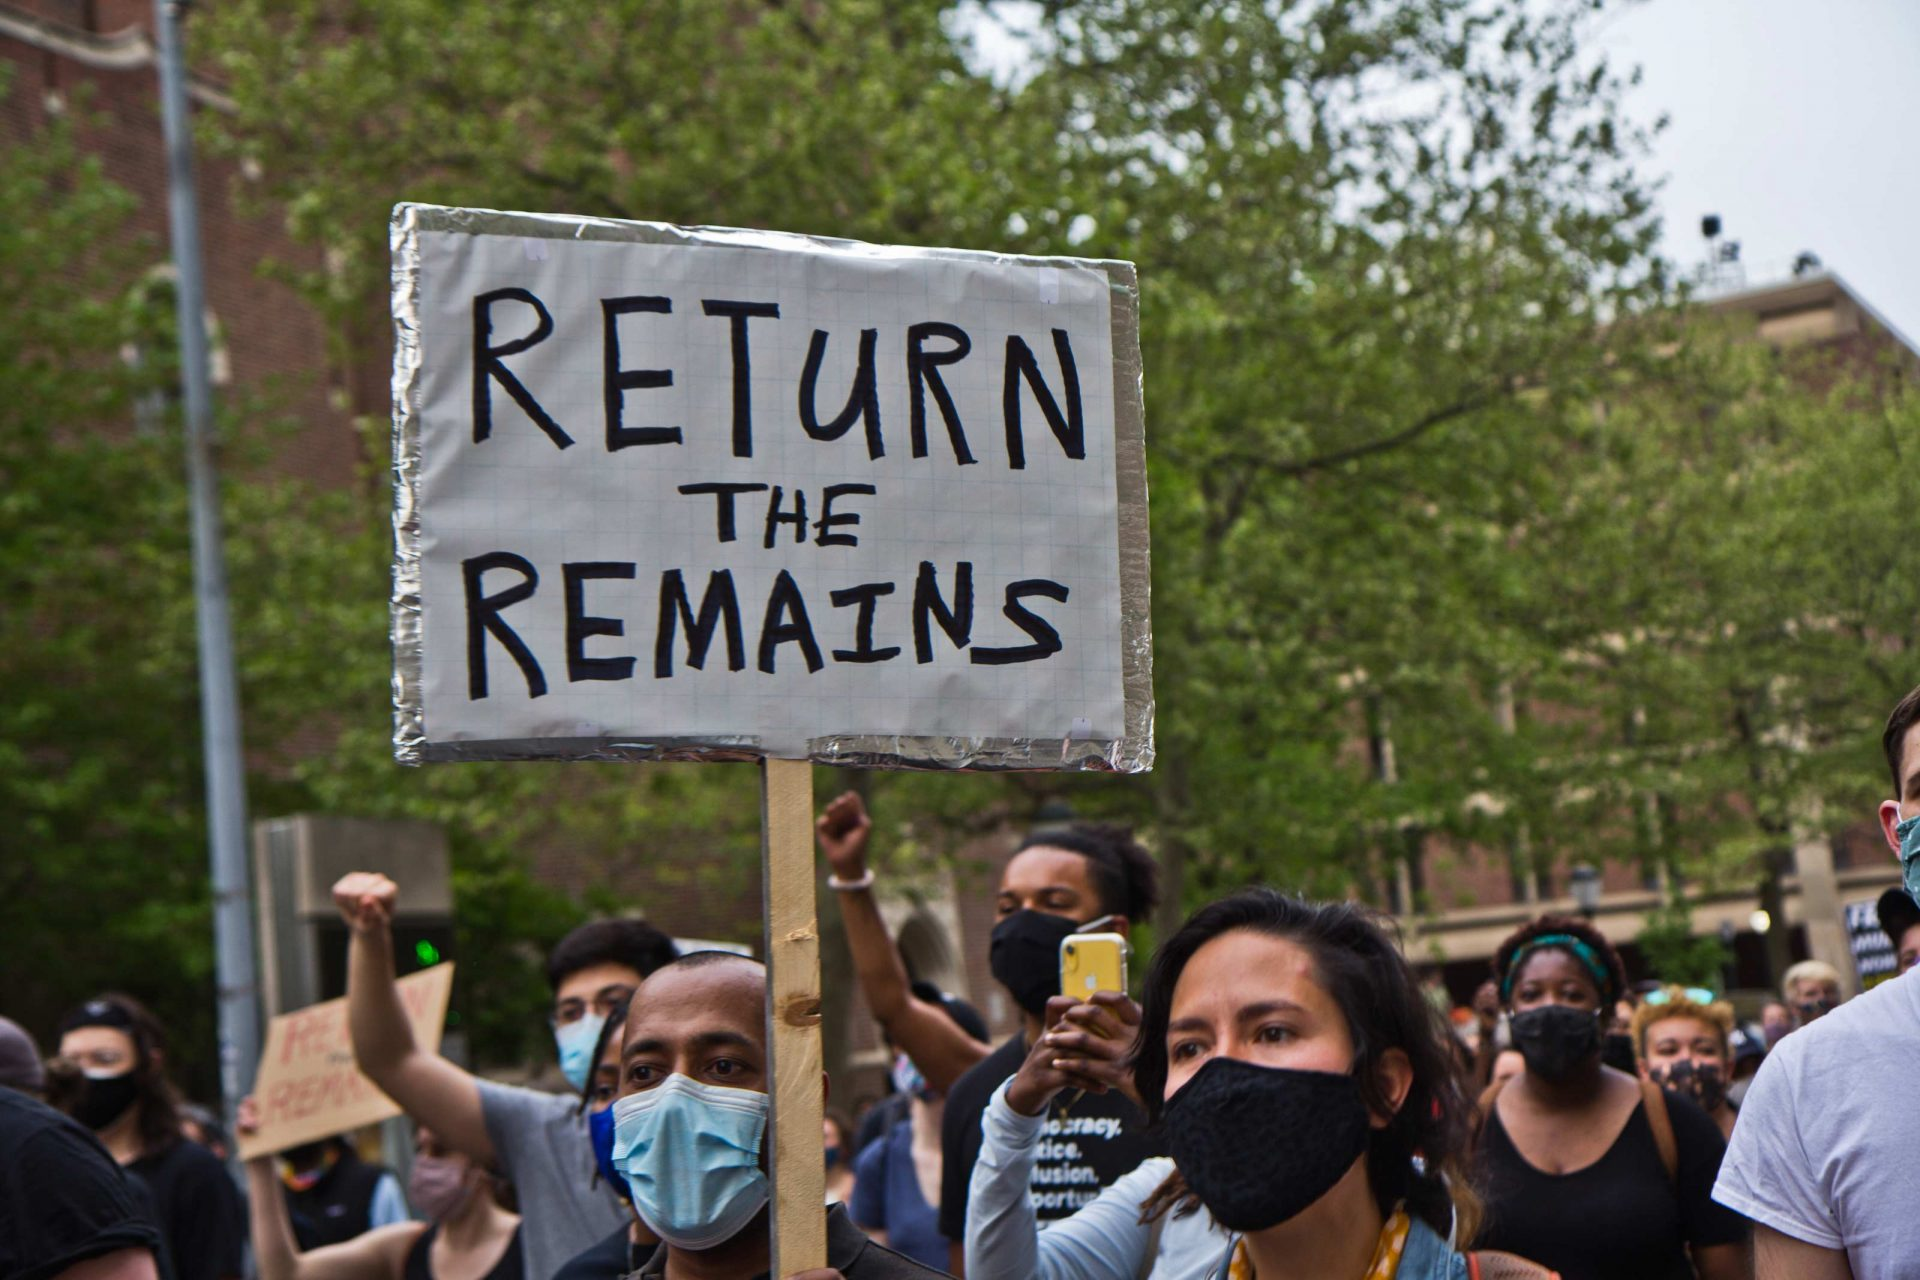 Protesters marched on the University of Pennsylvania's Campus on April 28, 2021, over the Penn Museum's mistreatment of the remains of children Tree and Delisha Africa who were killed when Philadelphia police bombed the MOVE Organization's headquarters in 1985.